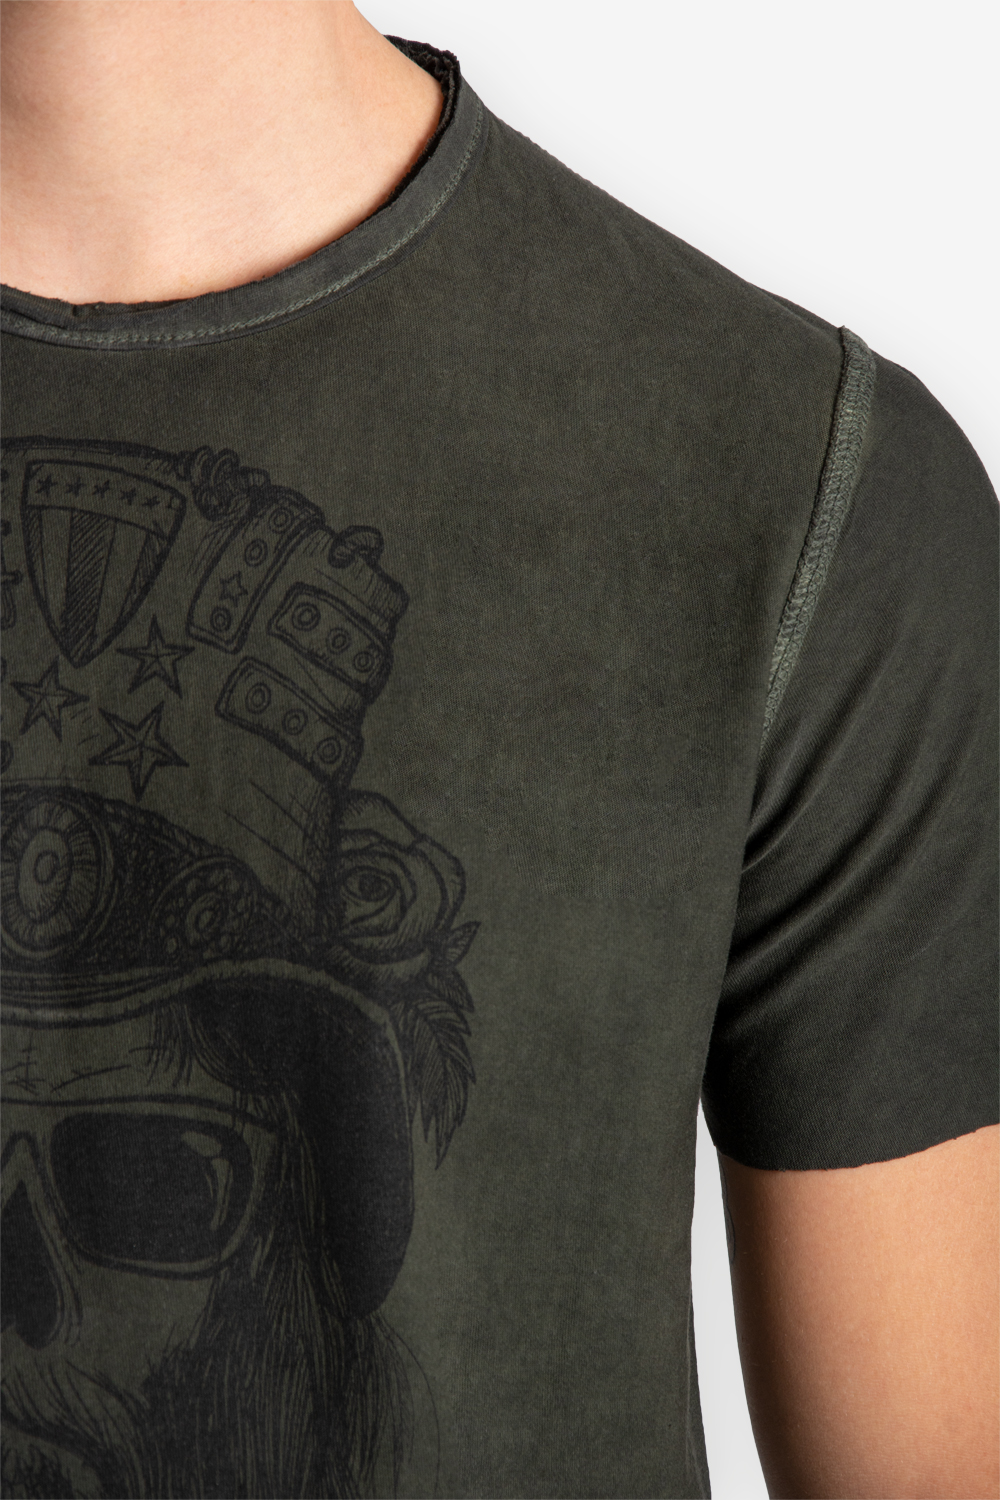 T-shirt Manica Corta Uomo Double Face 100% Cotone TATTOO